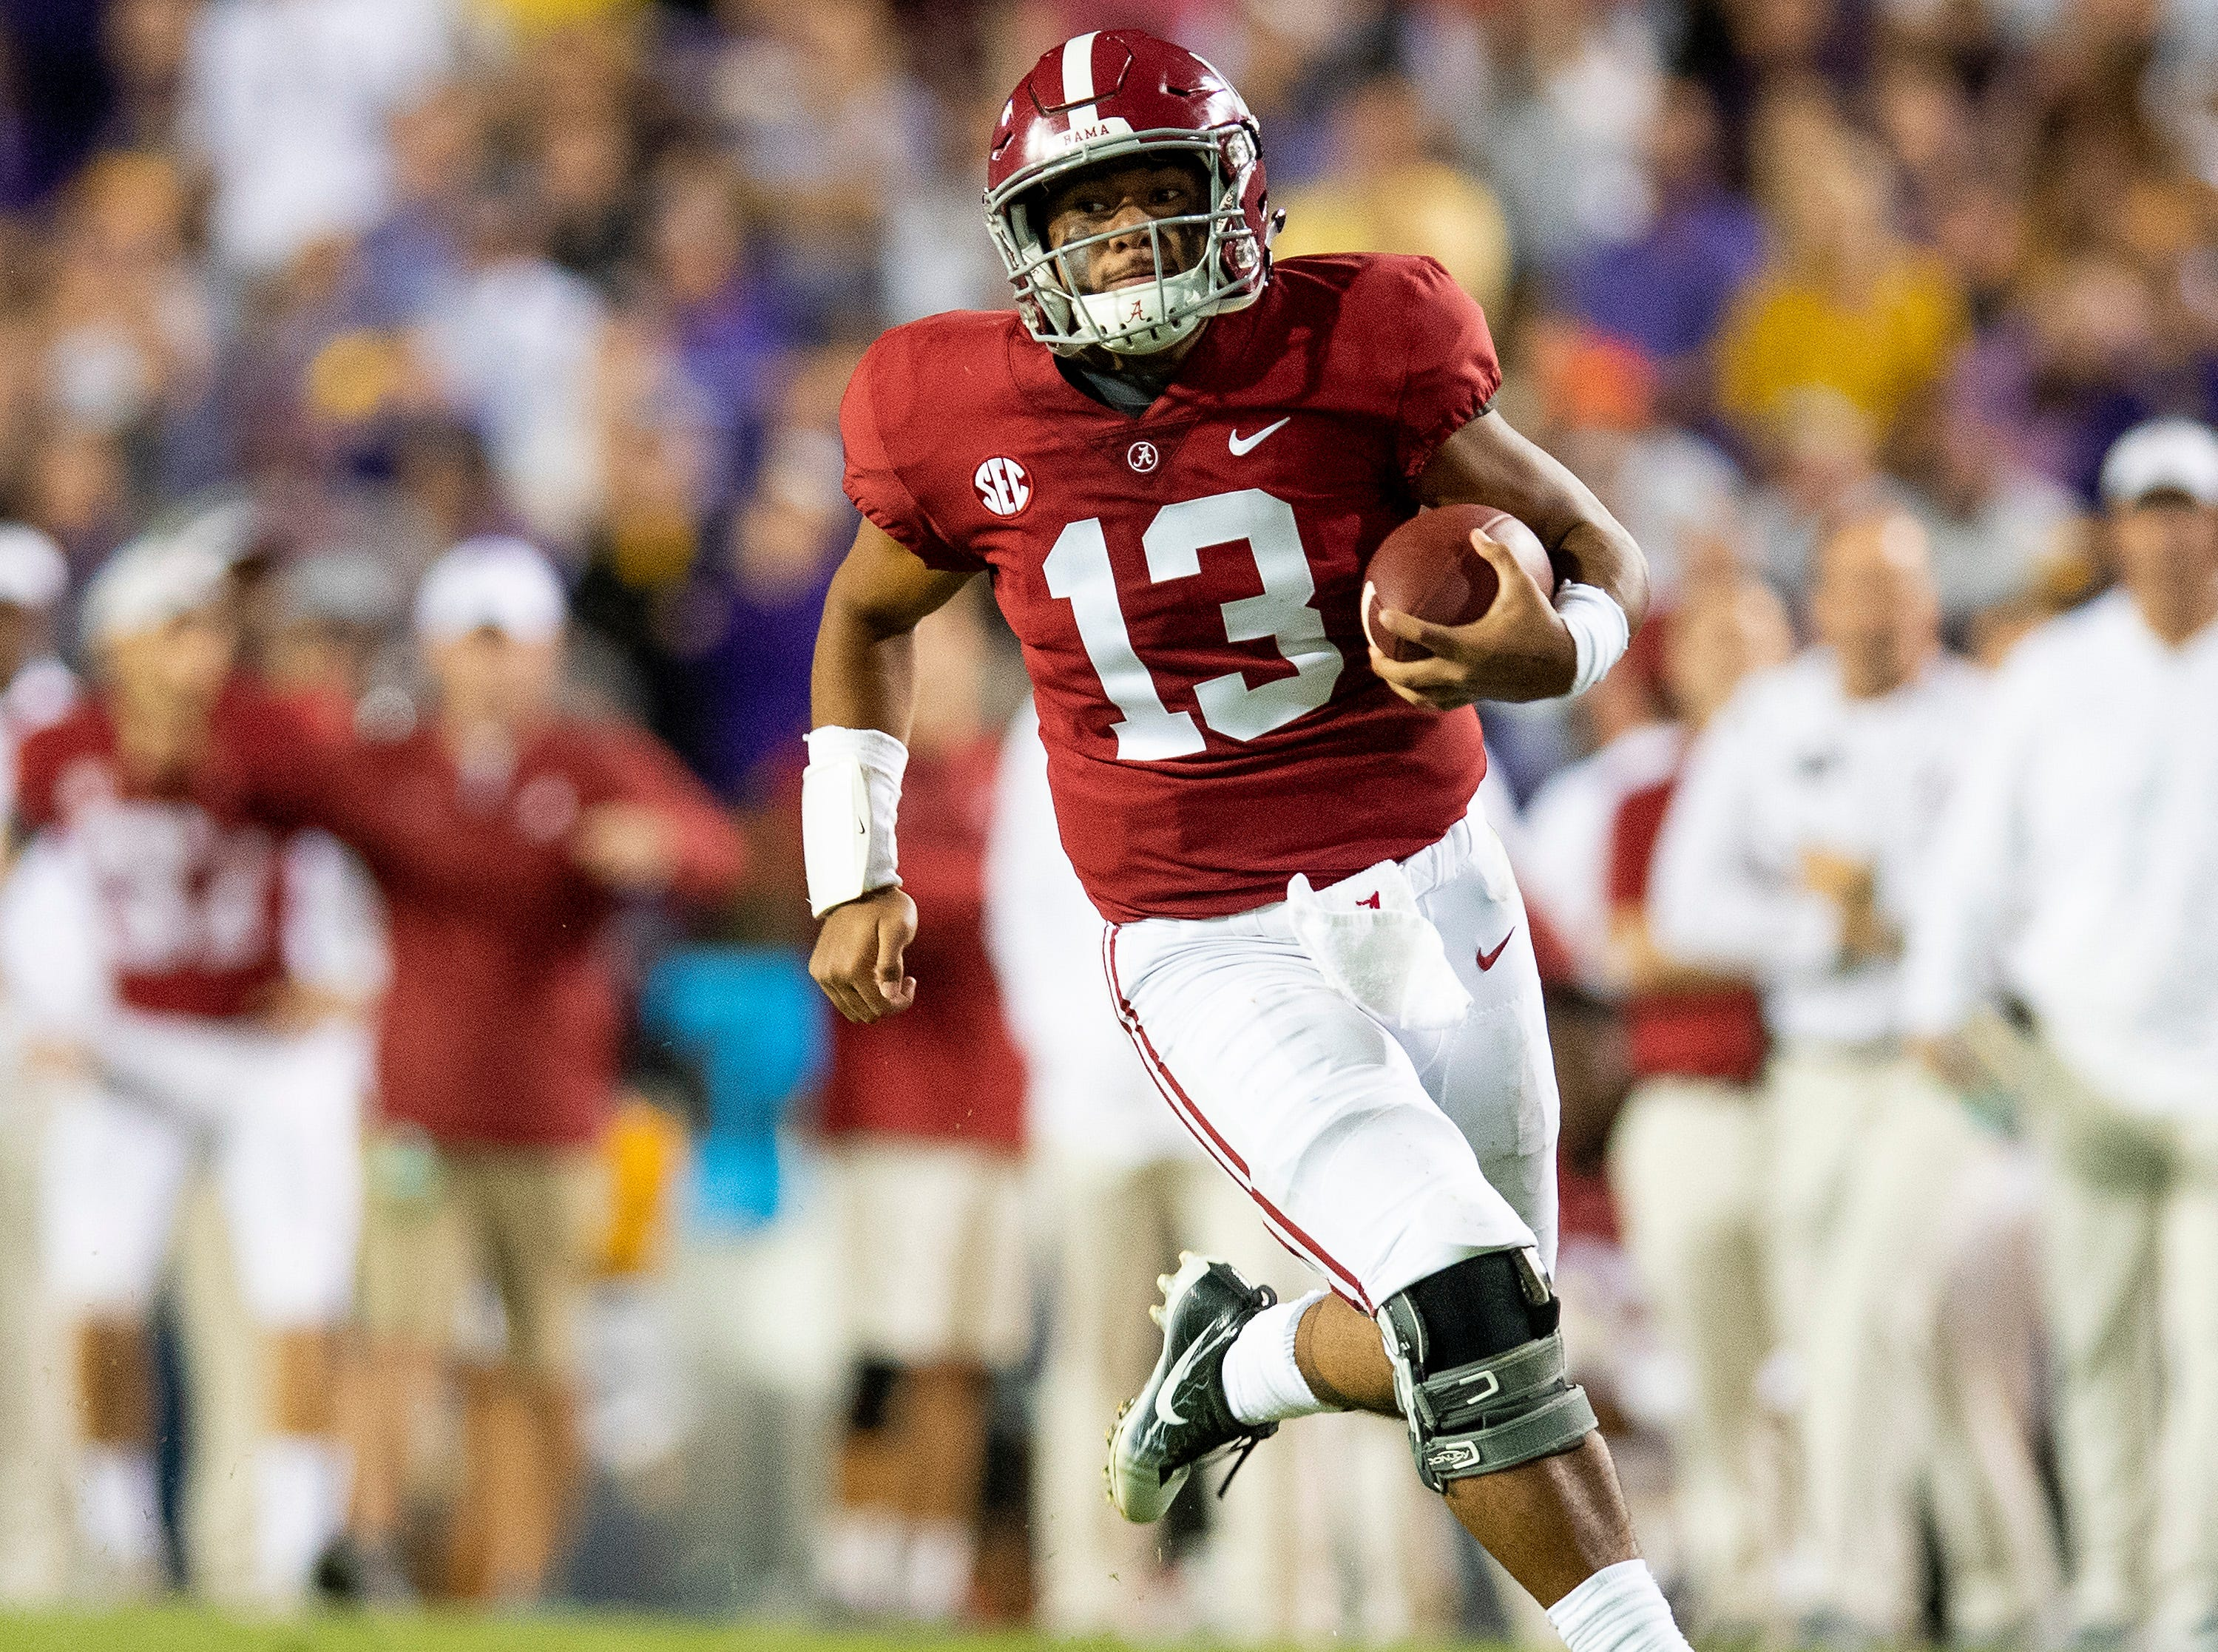 Alabama quarterback Tua Tagovailoa (13) carries for a long touchdown against LSU in second half action at Tiger Stadium in Baton Rouge, La., on Saturday November 3, 2018.